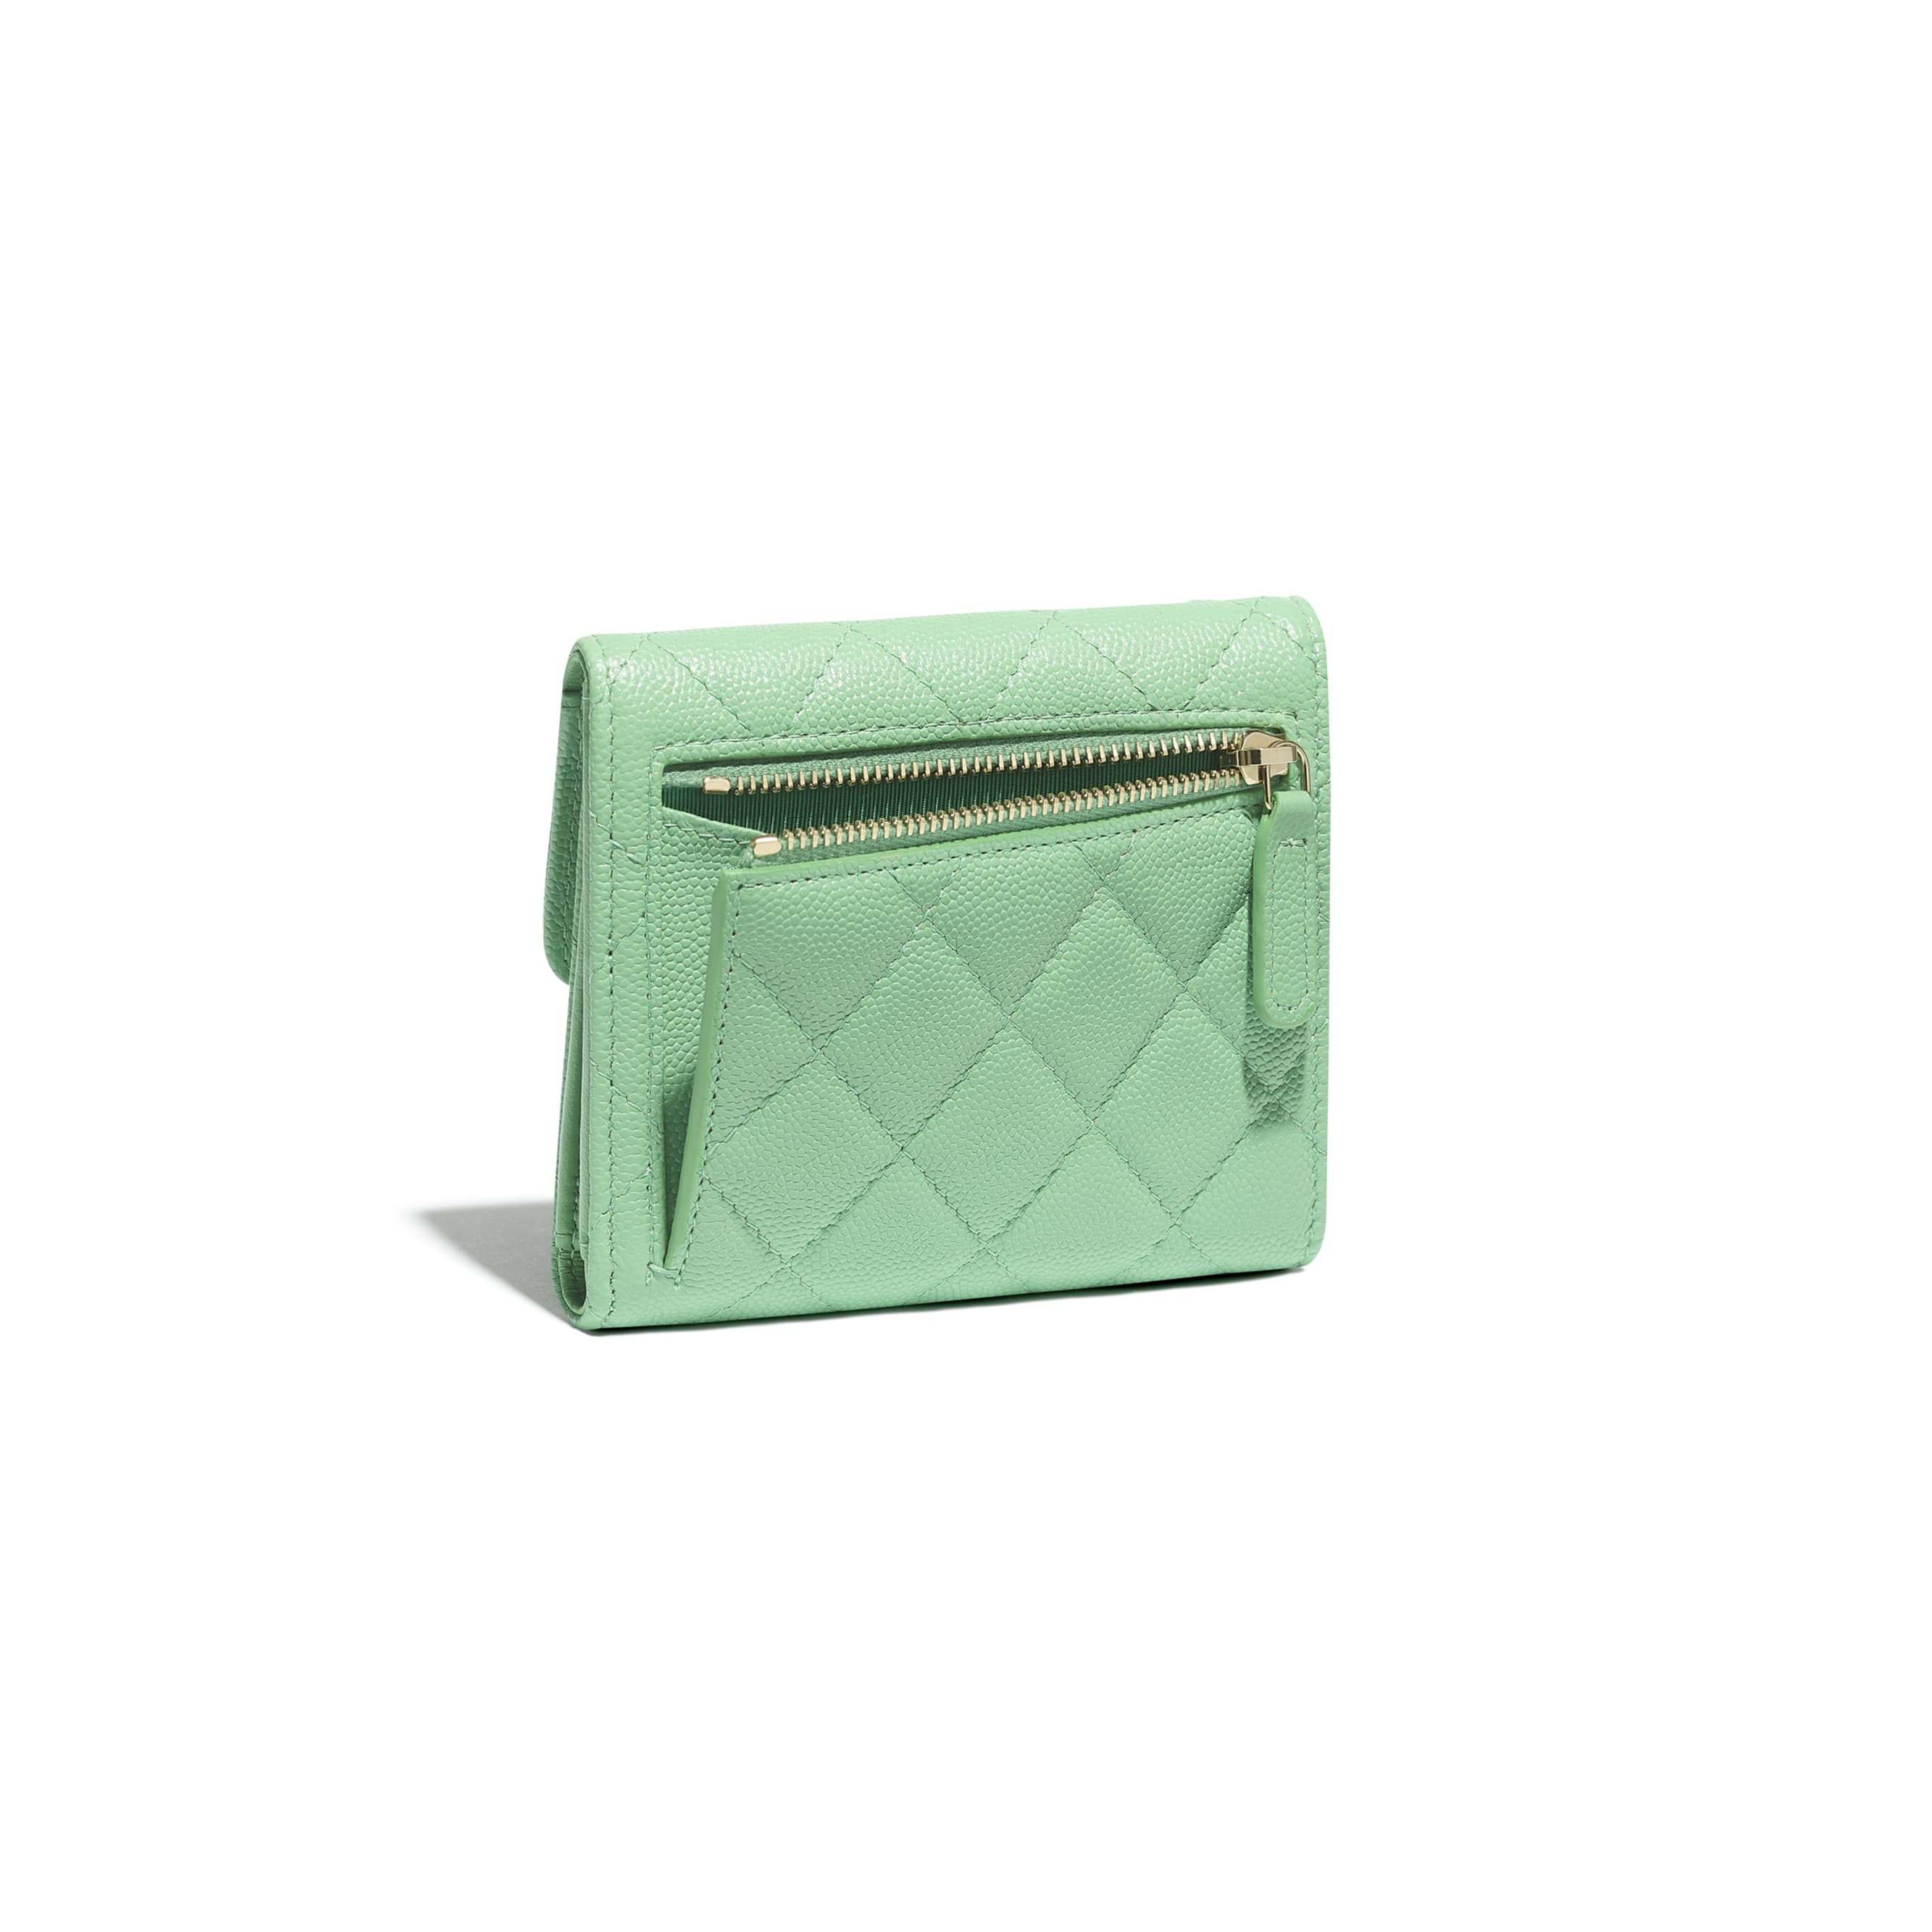 Classic Small Flap Wallet - Green - Grained Calfskin & Gold-Tone Metal - CHANEL - Extra view - see standard sized version